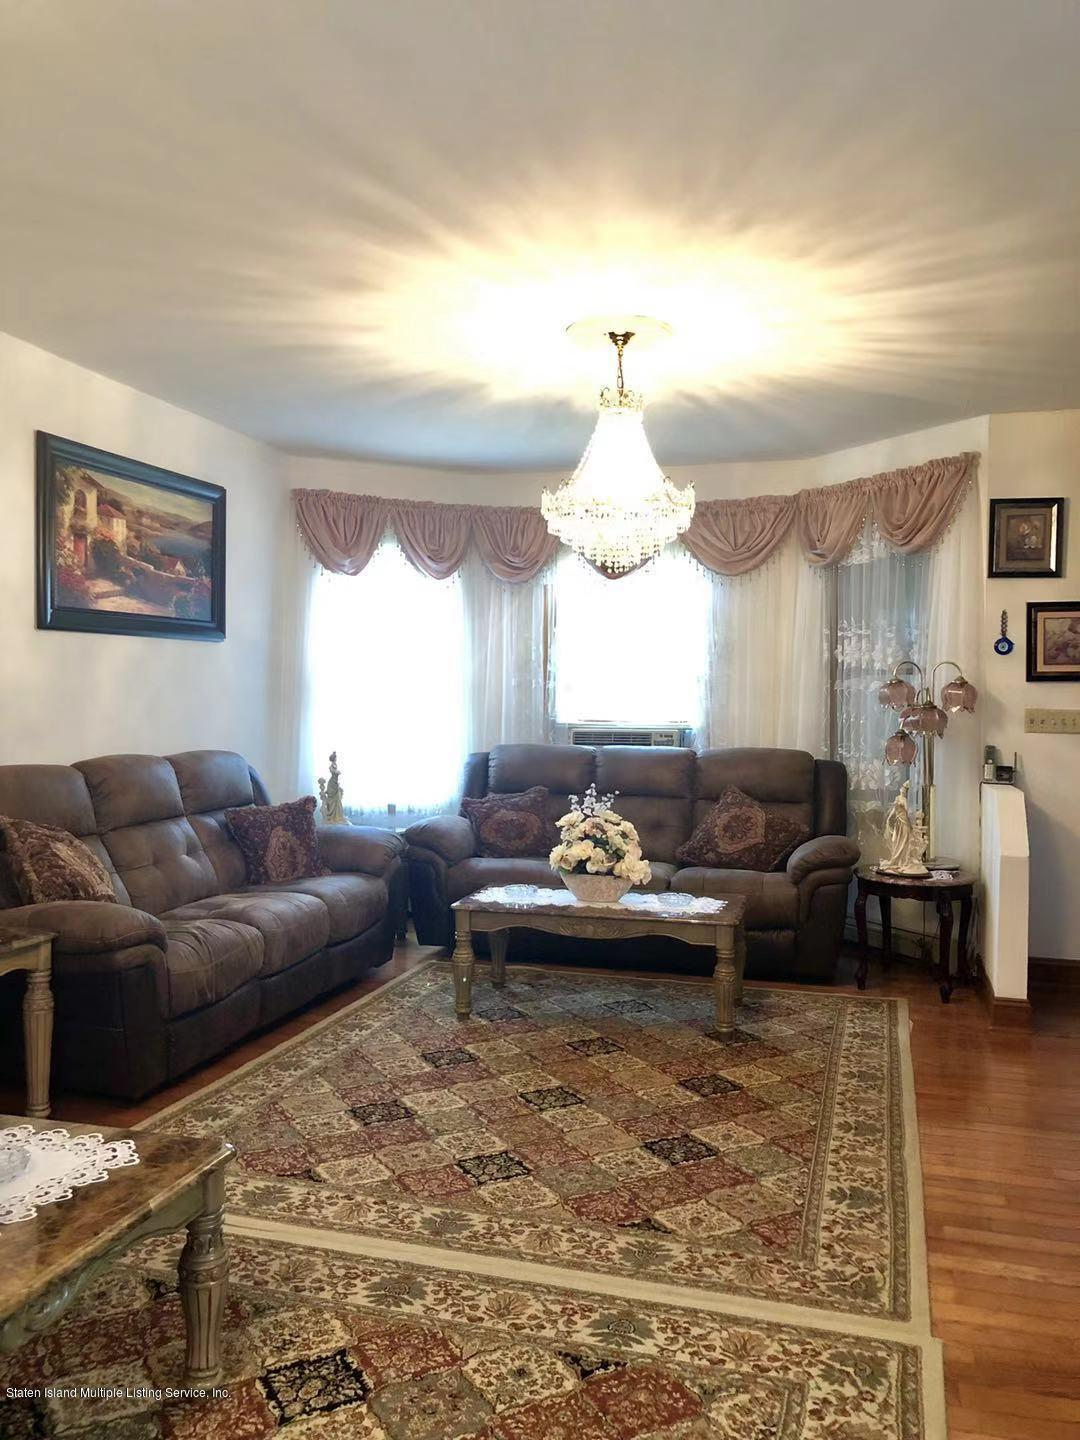 Single Family - Detached 1123 Forest Avenue  Staten Island, NY 10310, MLS-1131376-7